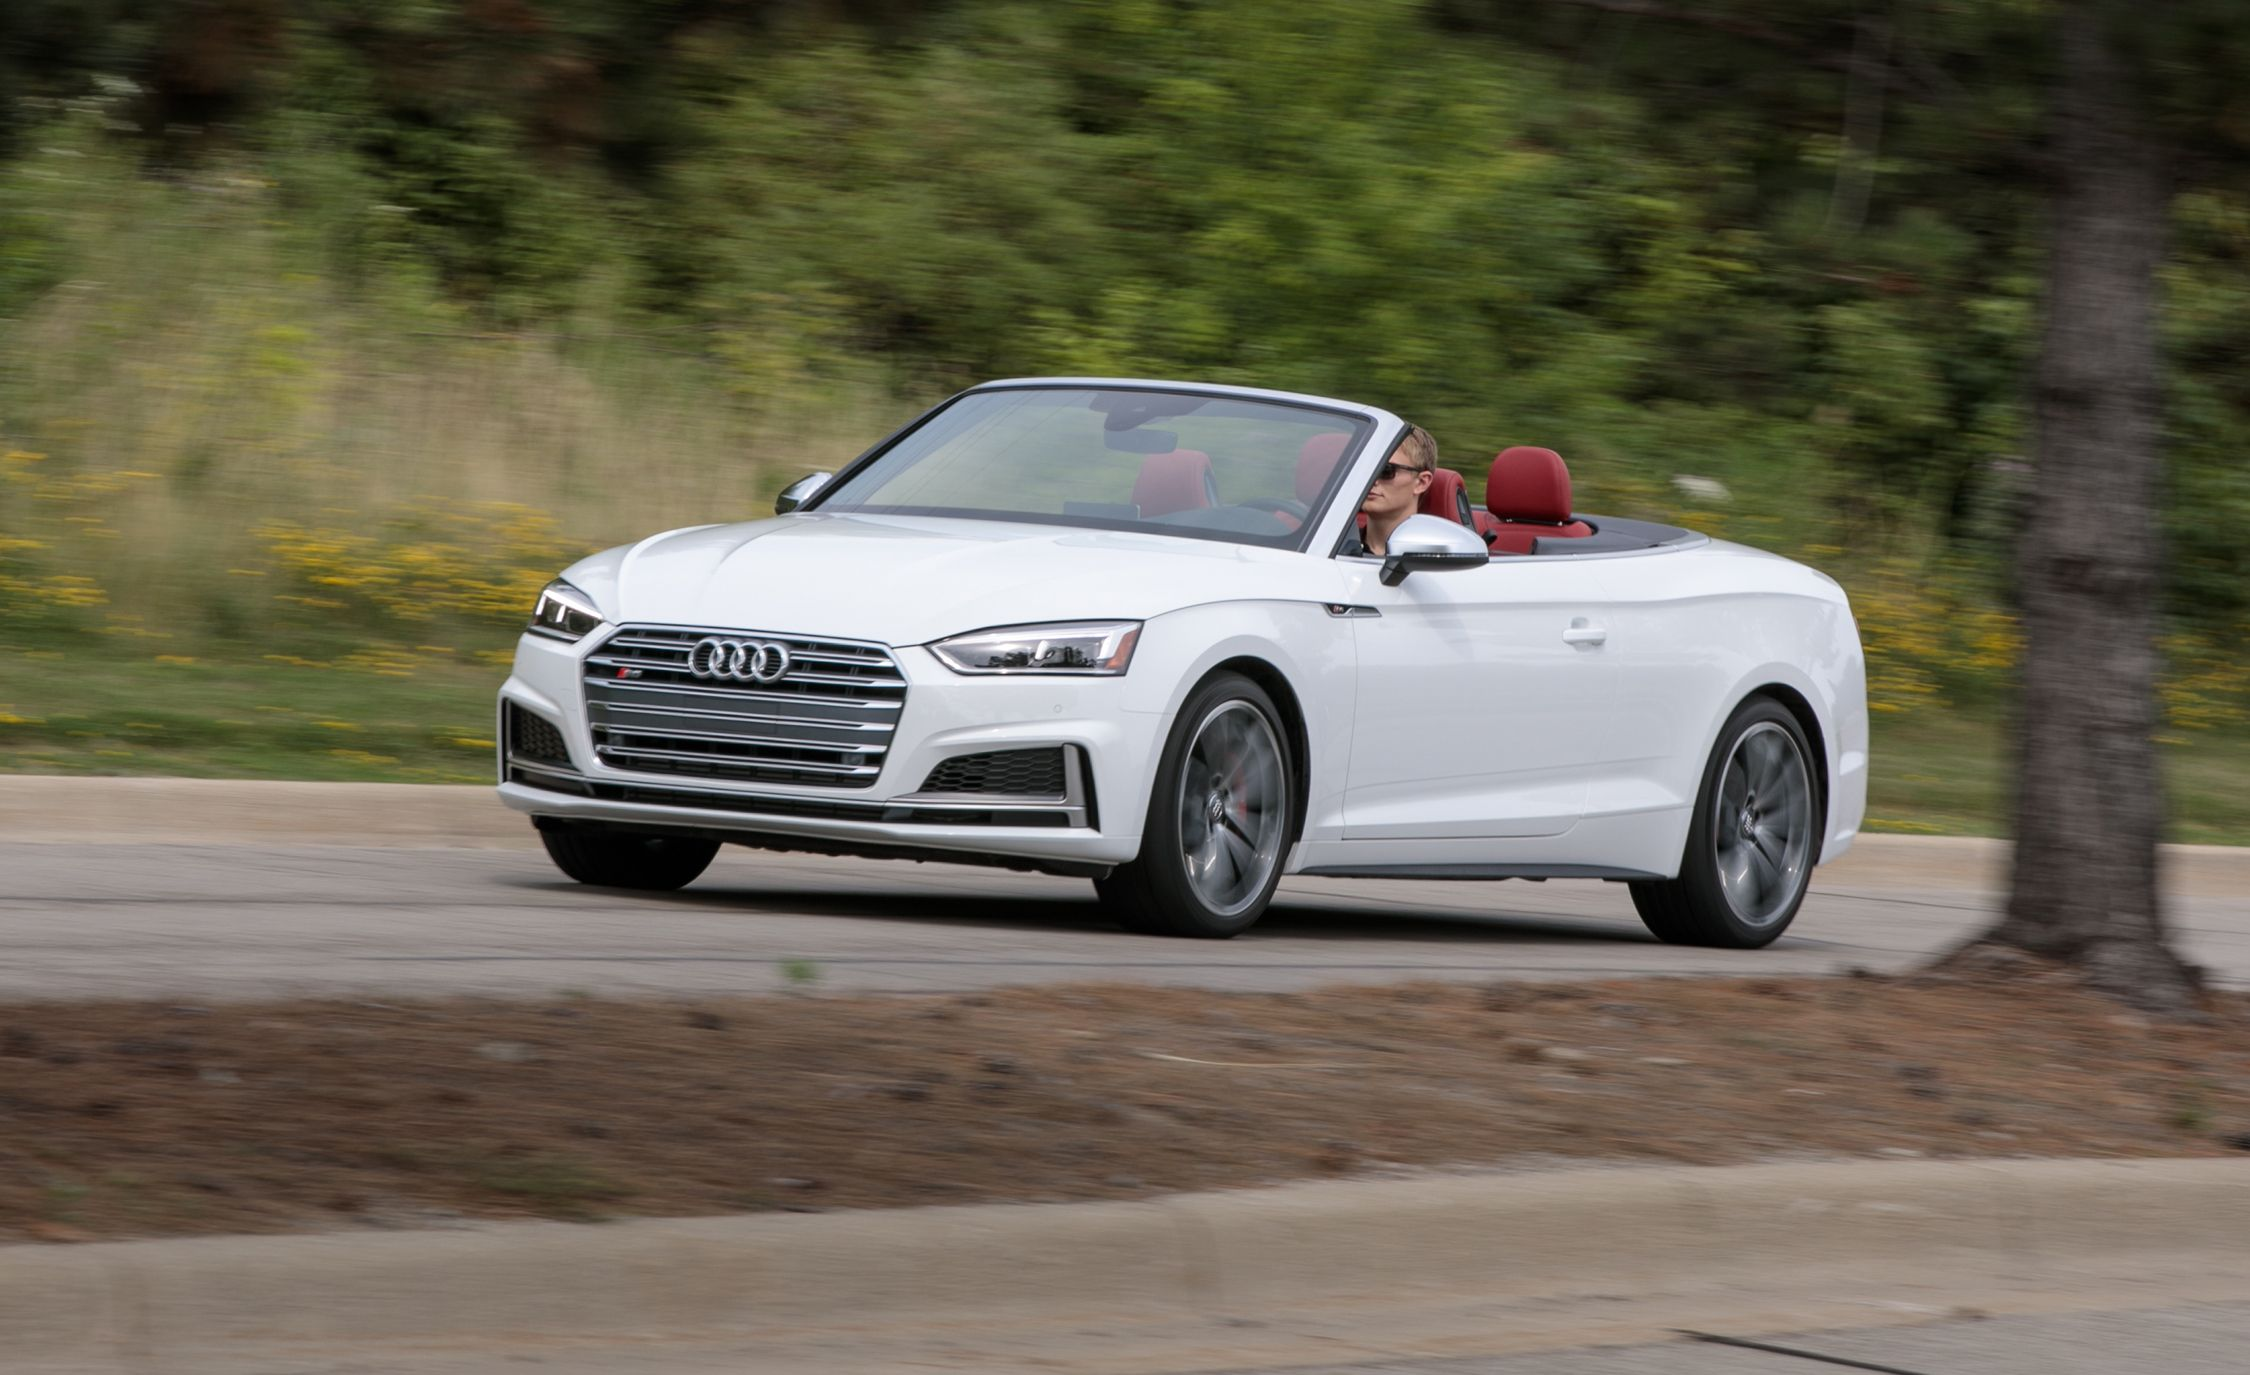 2018 Audi S5 Cabriolet Test Review Car And Driver